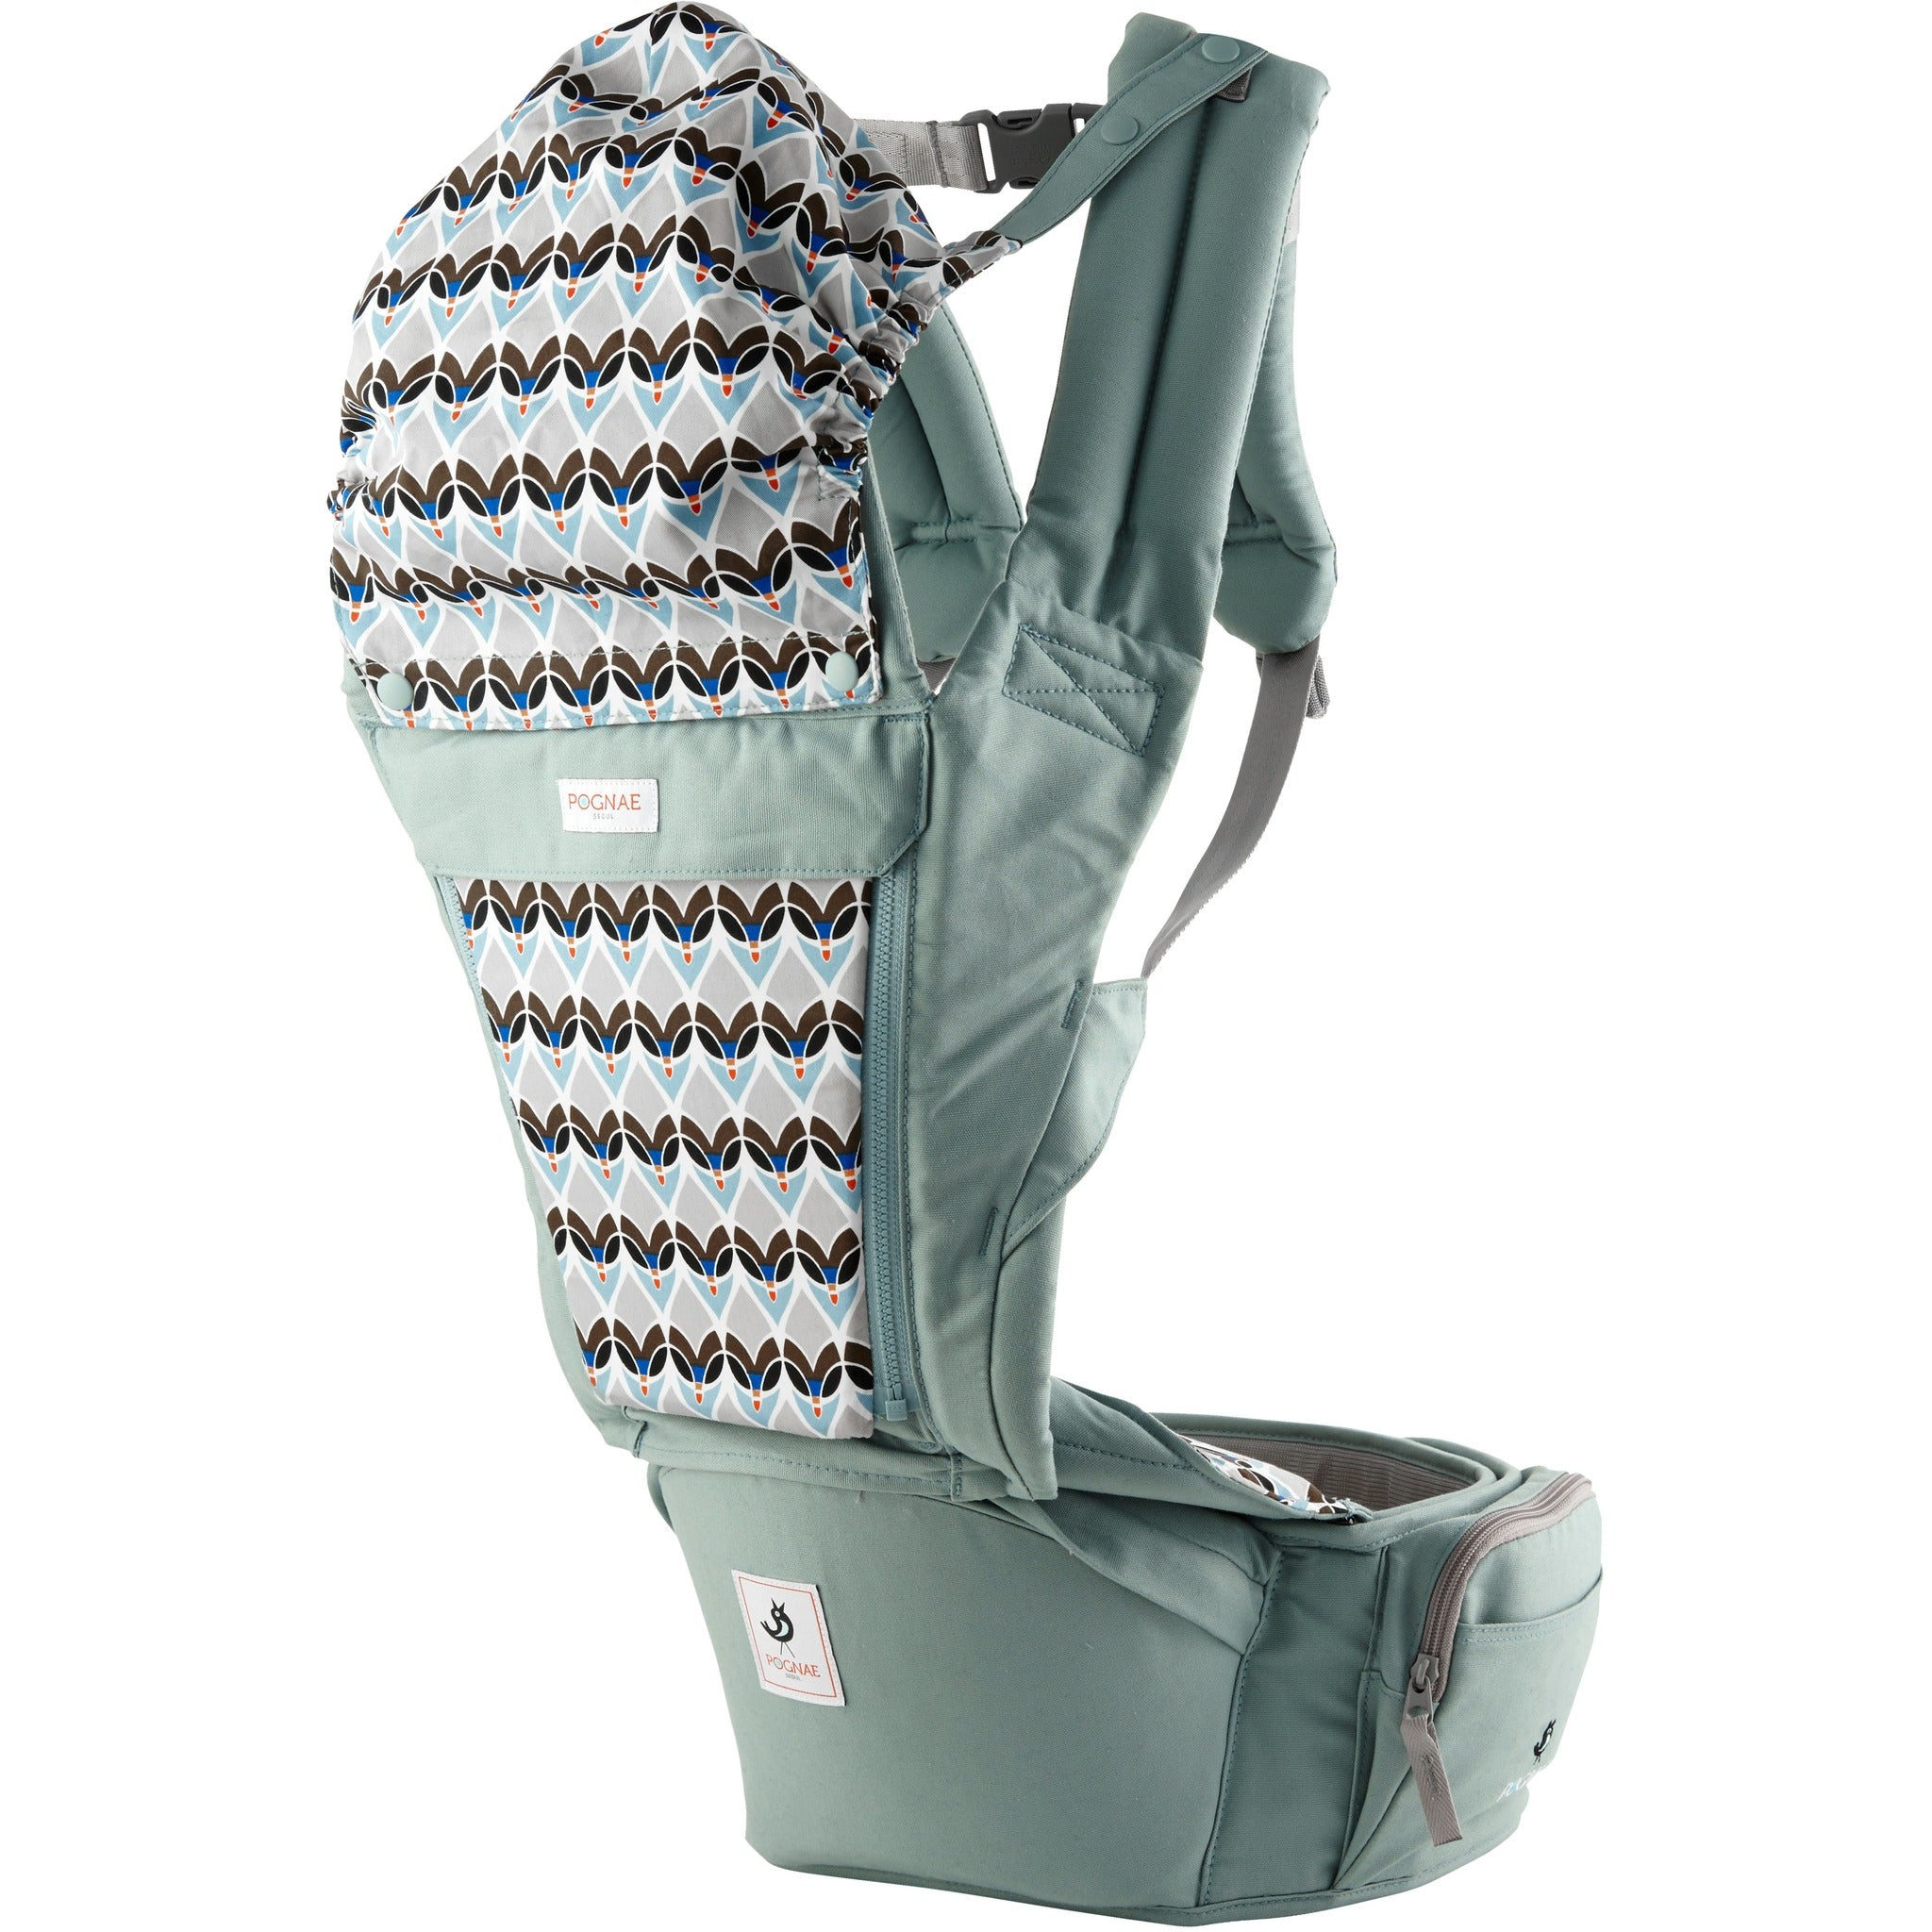 d794f0b2914 Pognae Australia - ORGA Plus All-in-One Baby Carrier